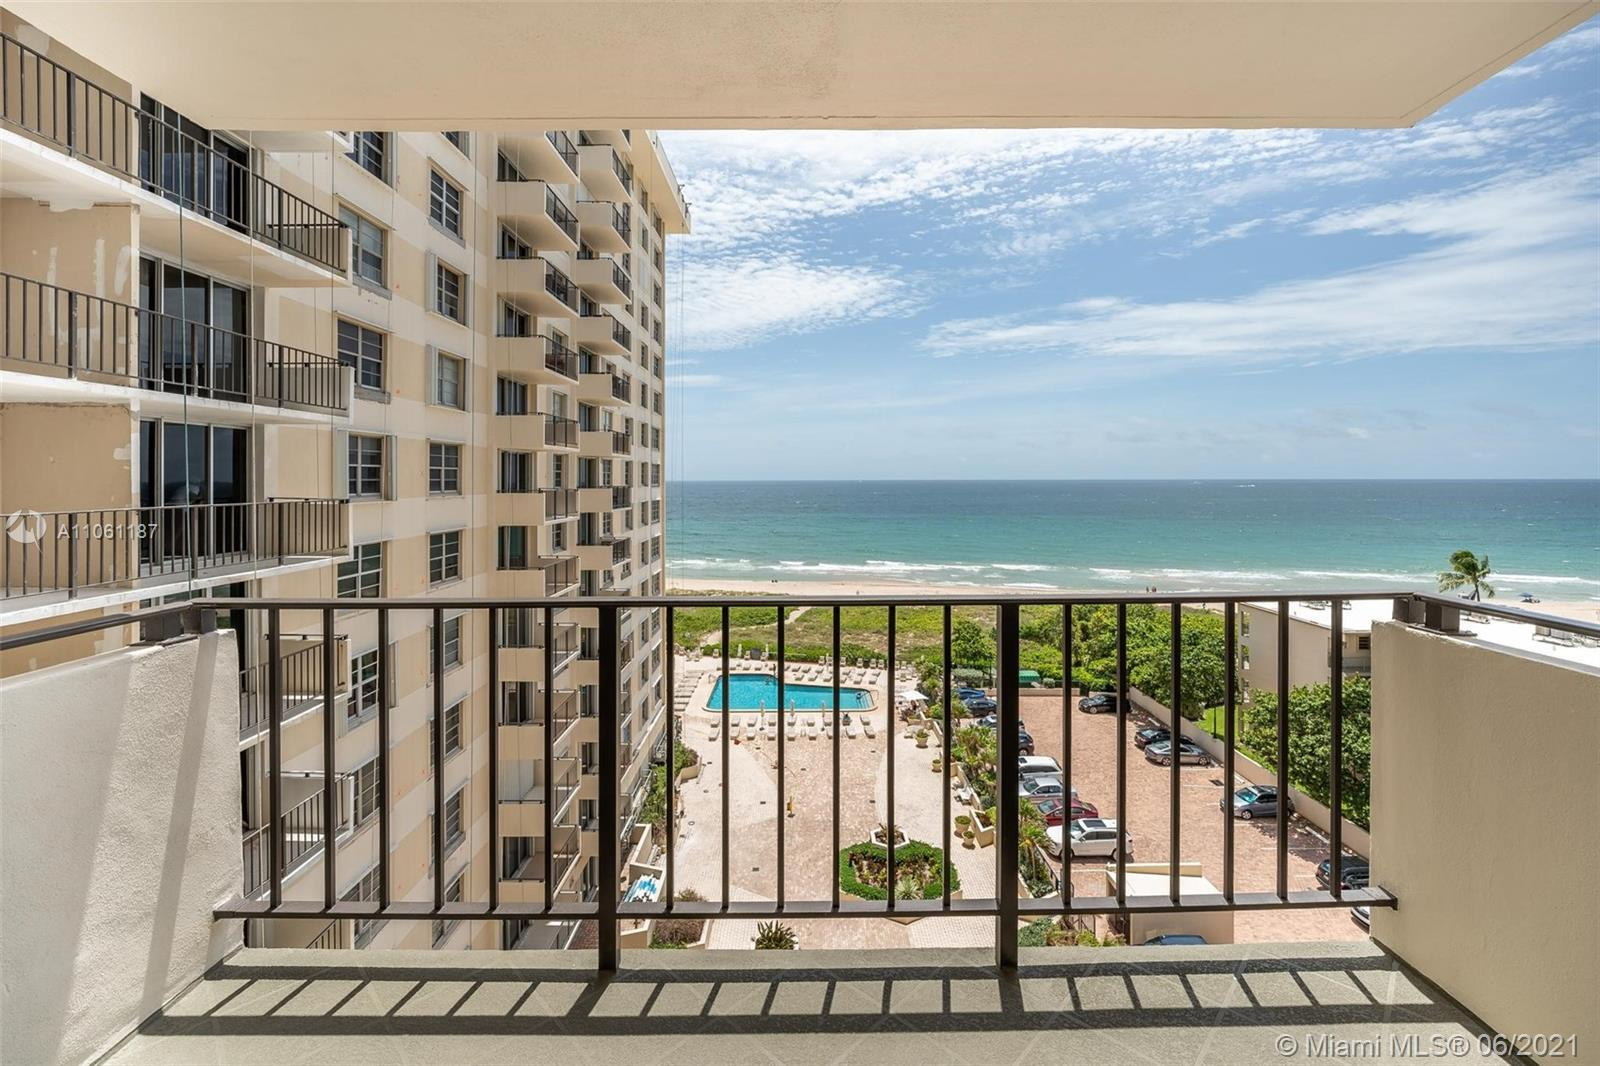 Beach Life at its best! Lauderdale by the Sea condo with direct ocean views.  2 bedroom 2 bathroom –